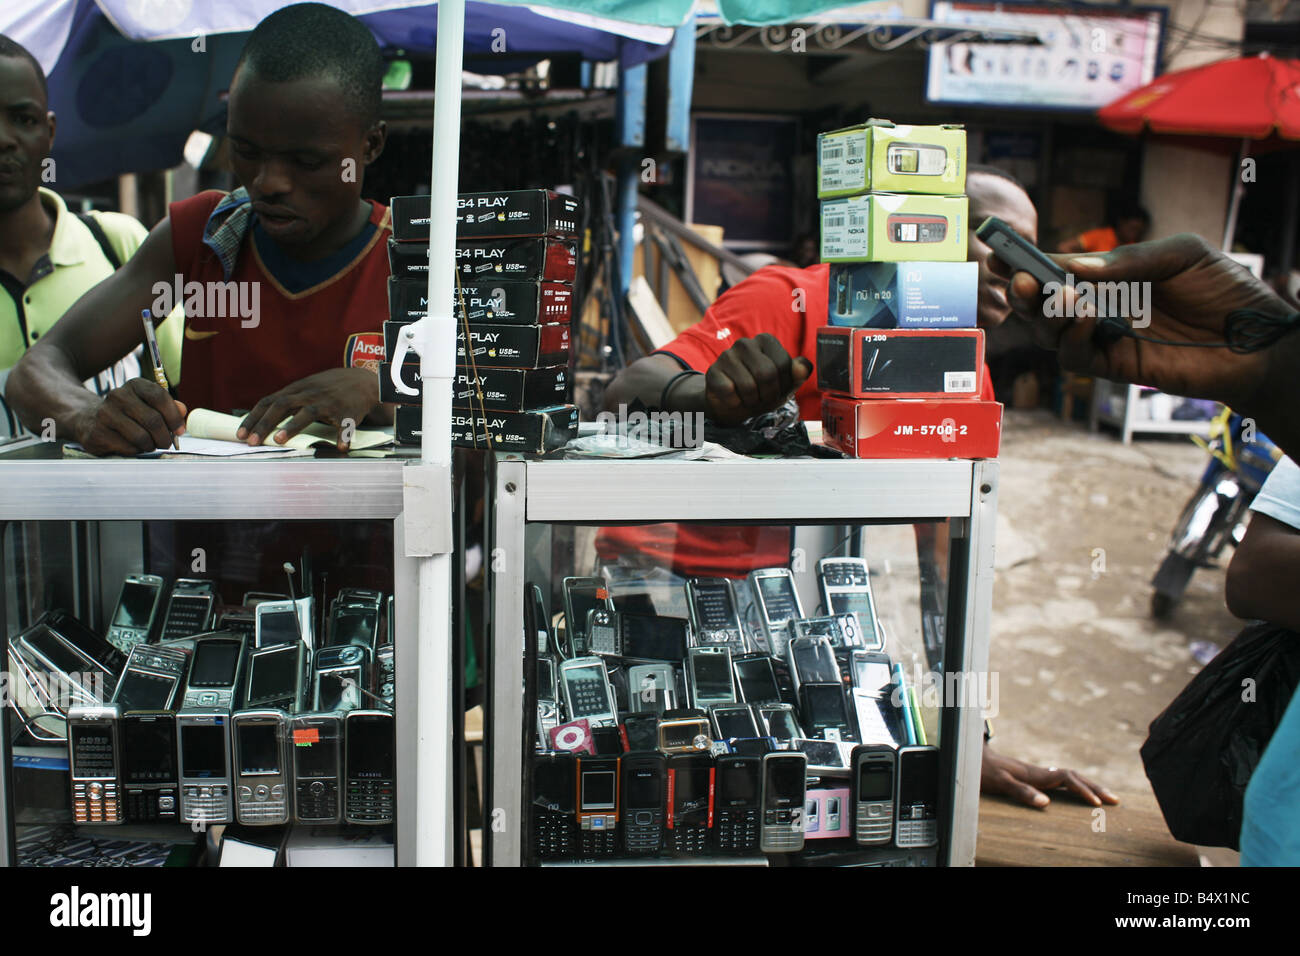 Mobile phones for sale in Lagos. - Stock Image